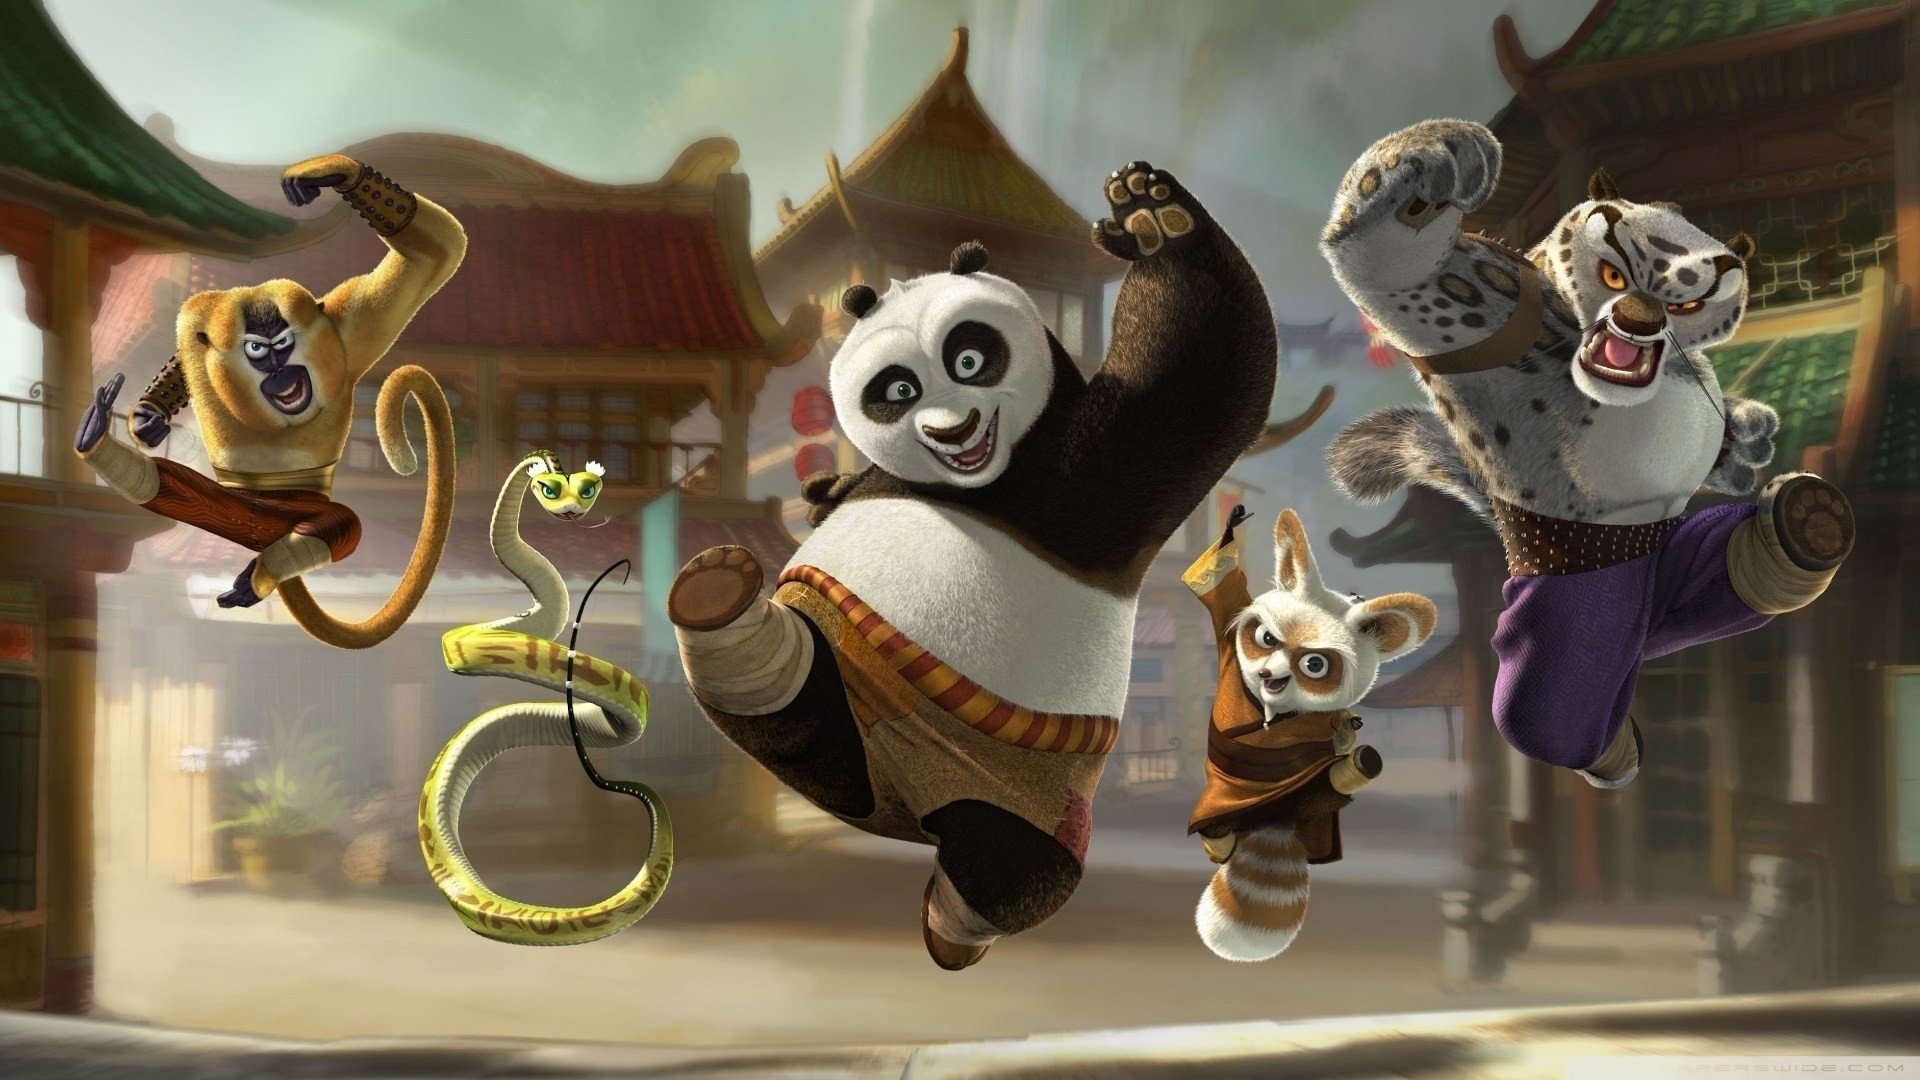 46 kung fu panda hd wallpapers | background images - wallpaper abyss